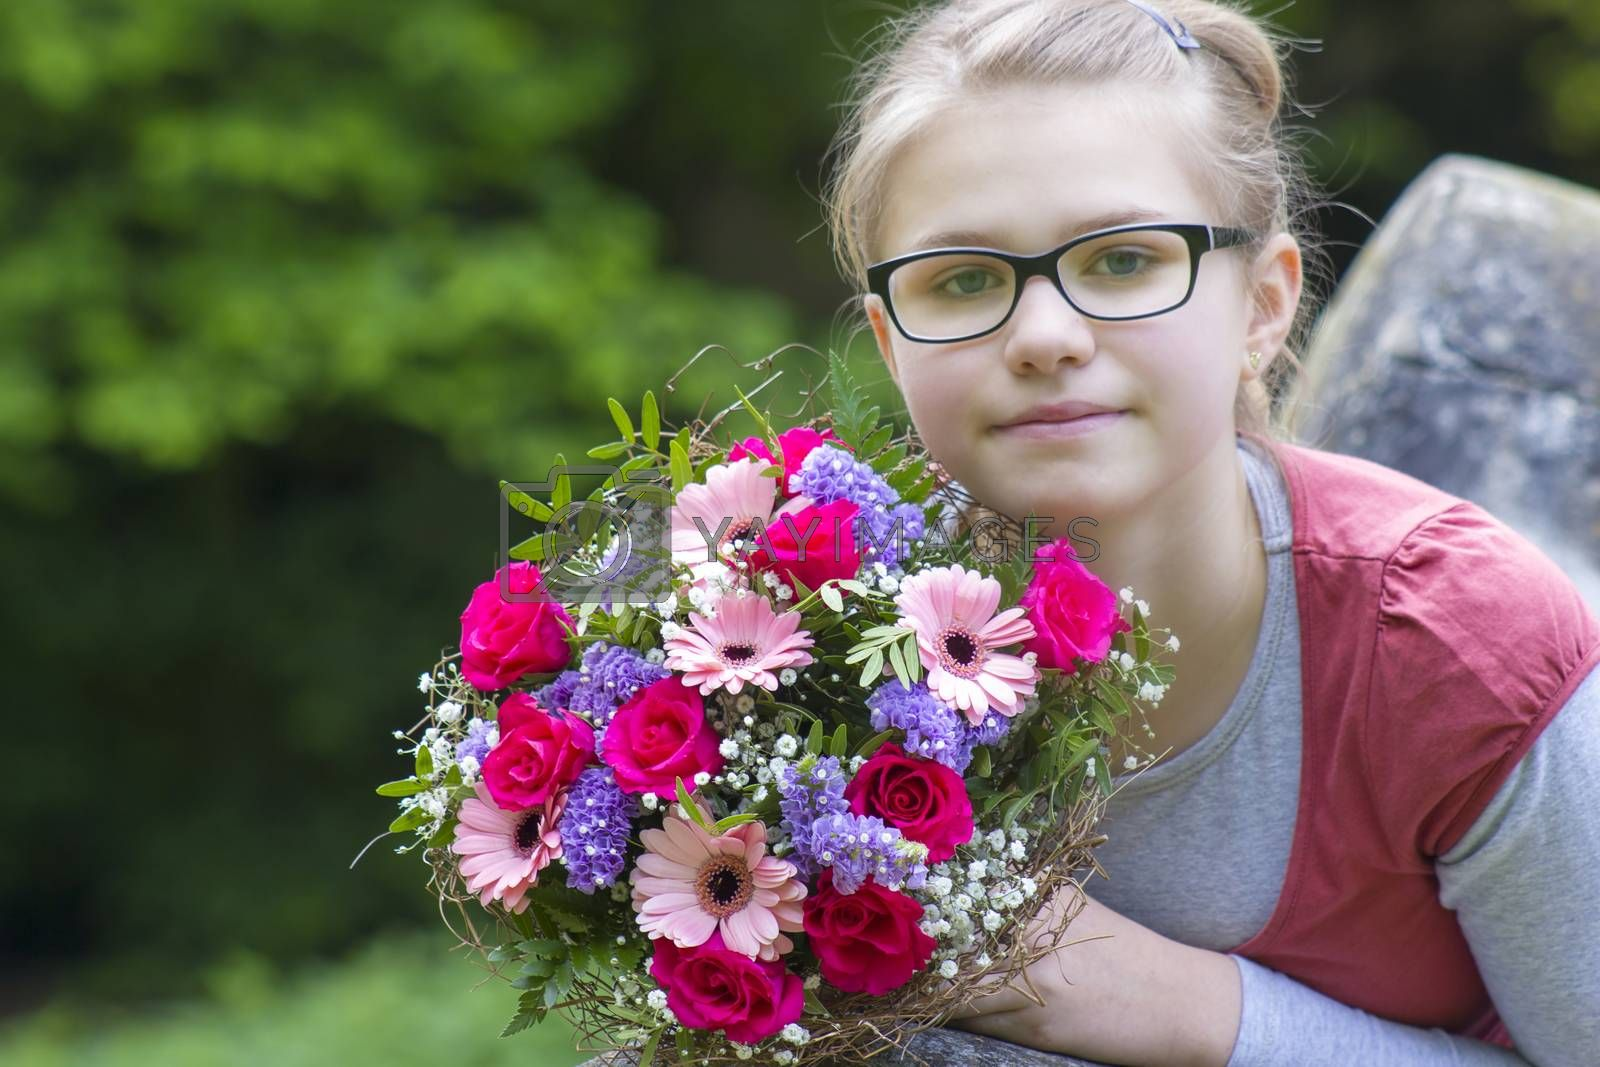 cute young girl with flowers - gift for the mother